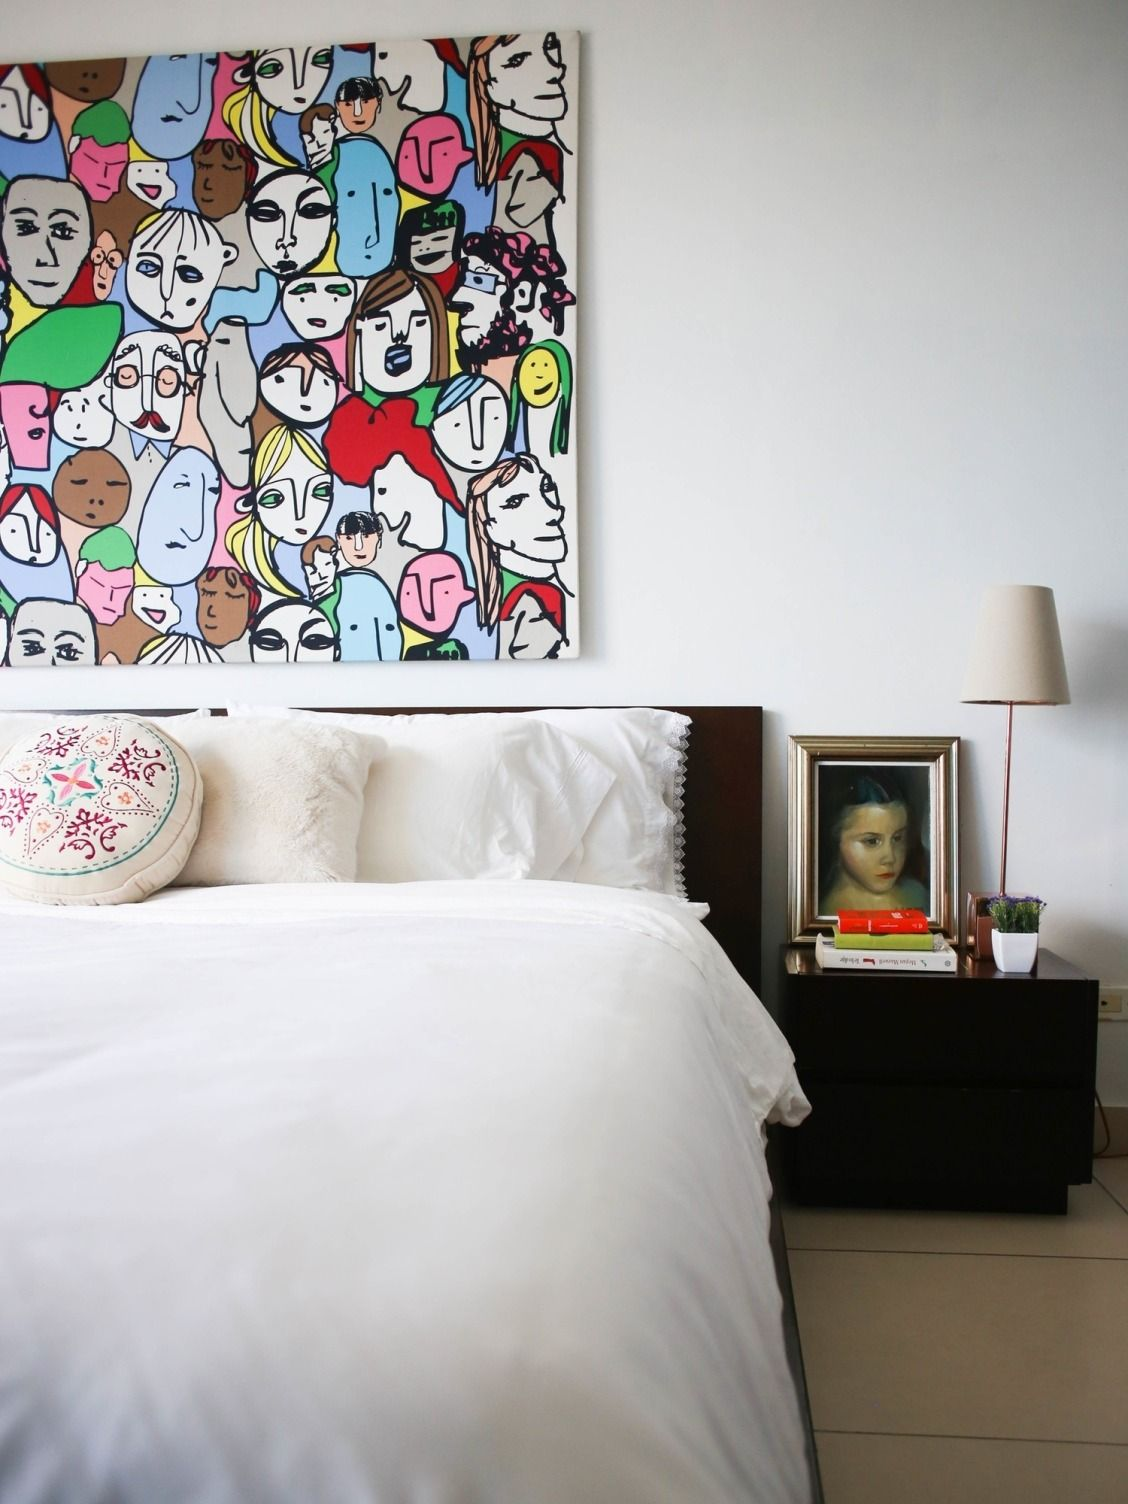 5 Ways to Customize Your Bedroom - Don't let it feel bland or generic—add bold colors, bright art out of the ordinary things to make it truly yours.